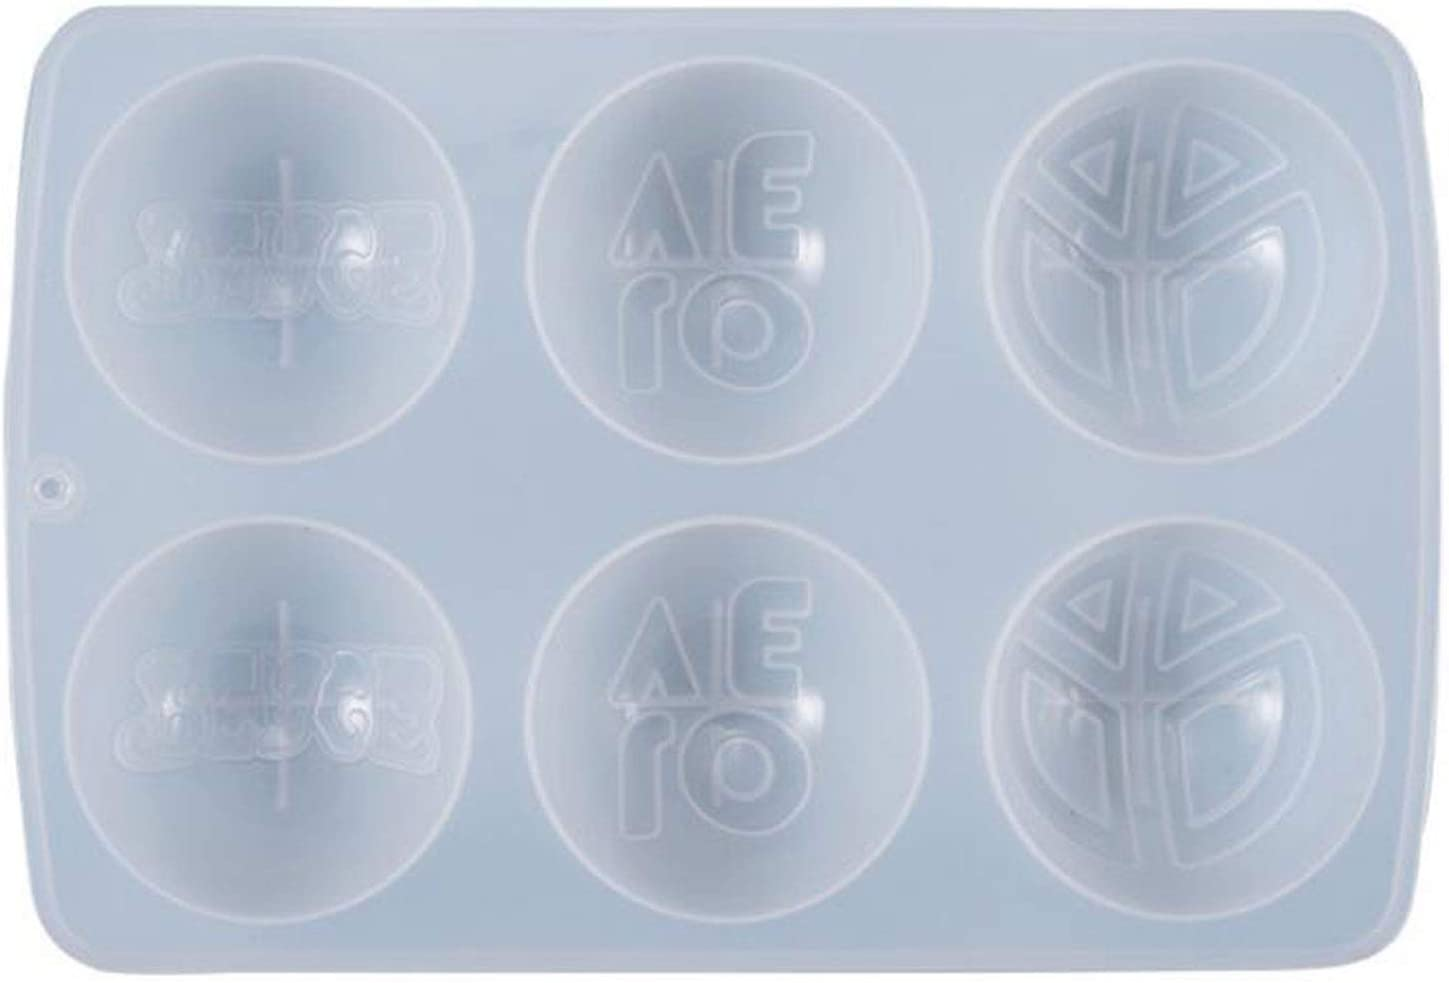 DRINK Round Letters 6 Cells Cr Decoration Sales Casting Mould Silicone Easy-to-use